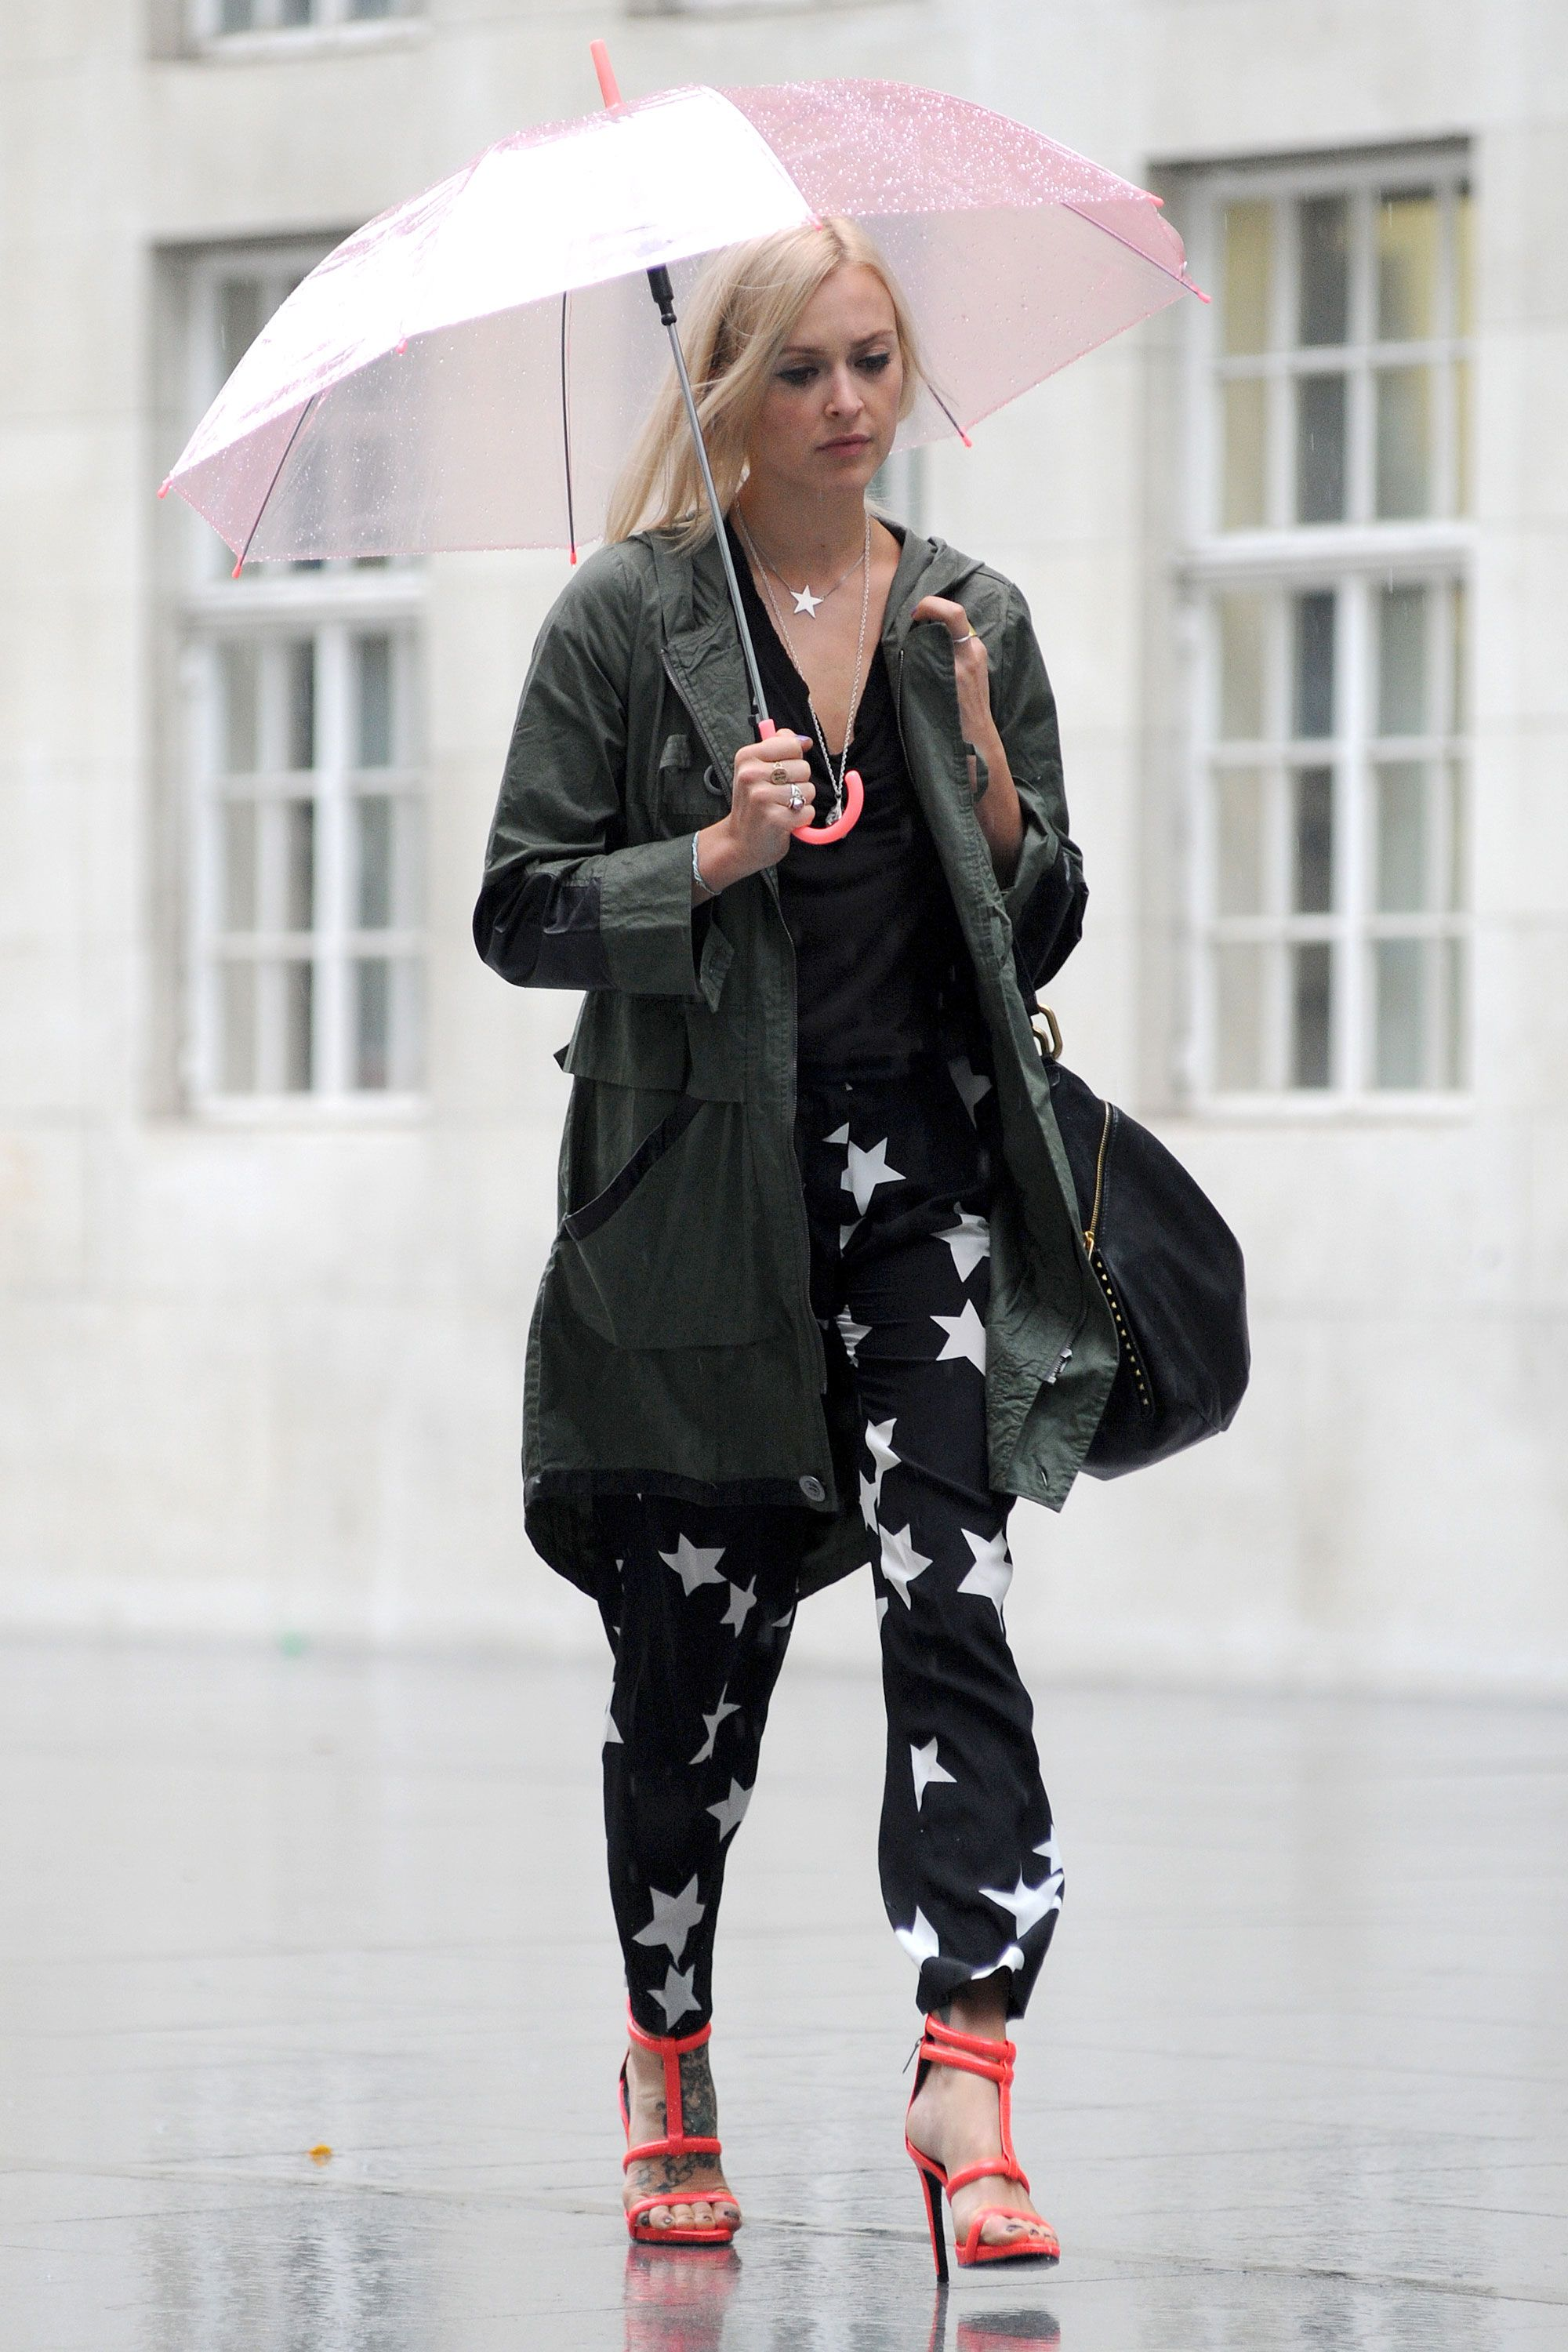 Rain on Cotton's parade? Never. She's all business up top in a windbreaker, but party on the bottom in strappy heels.